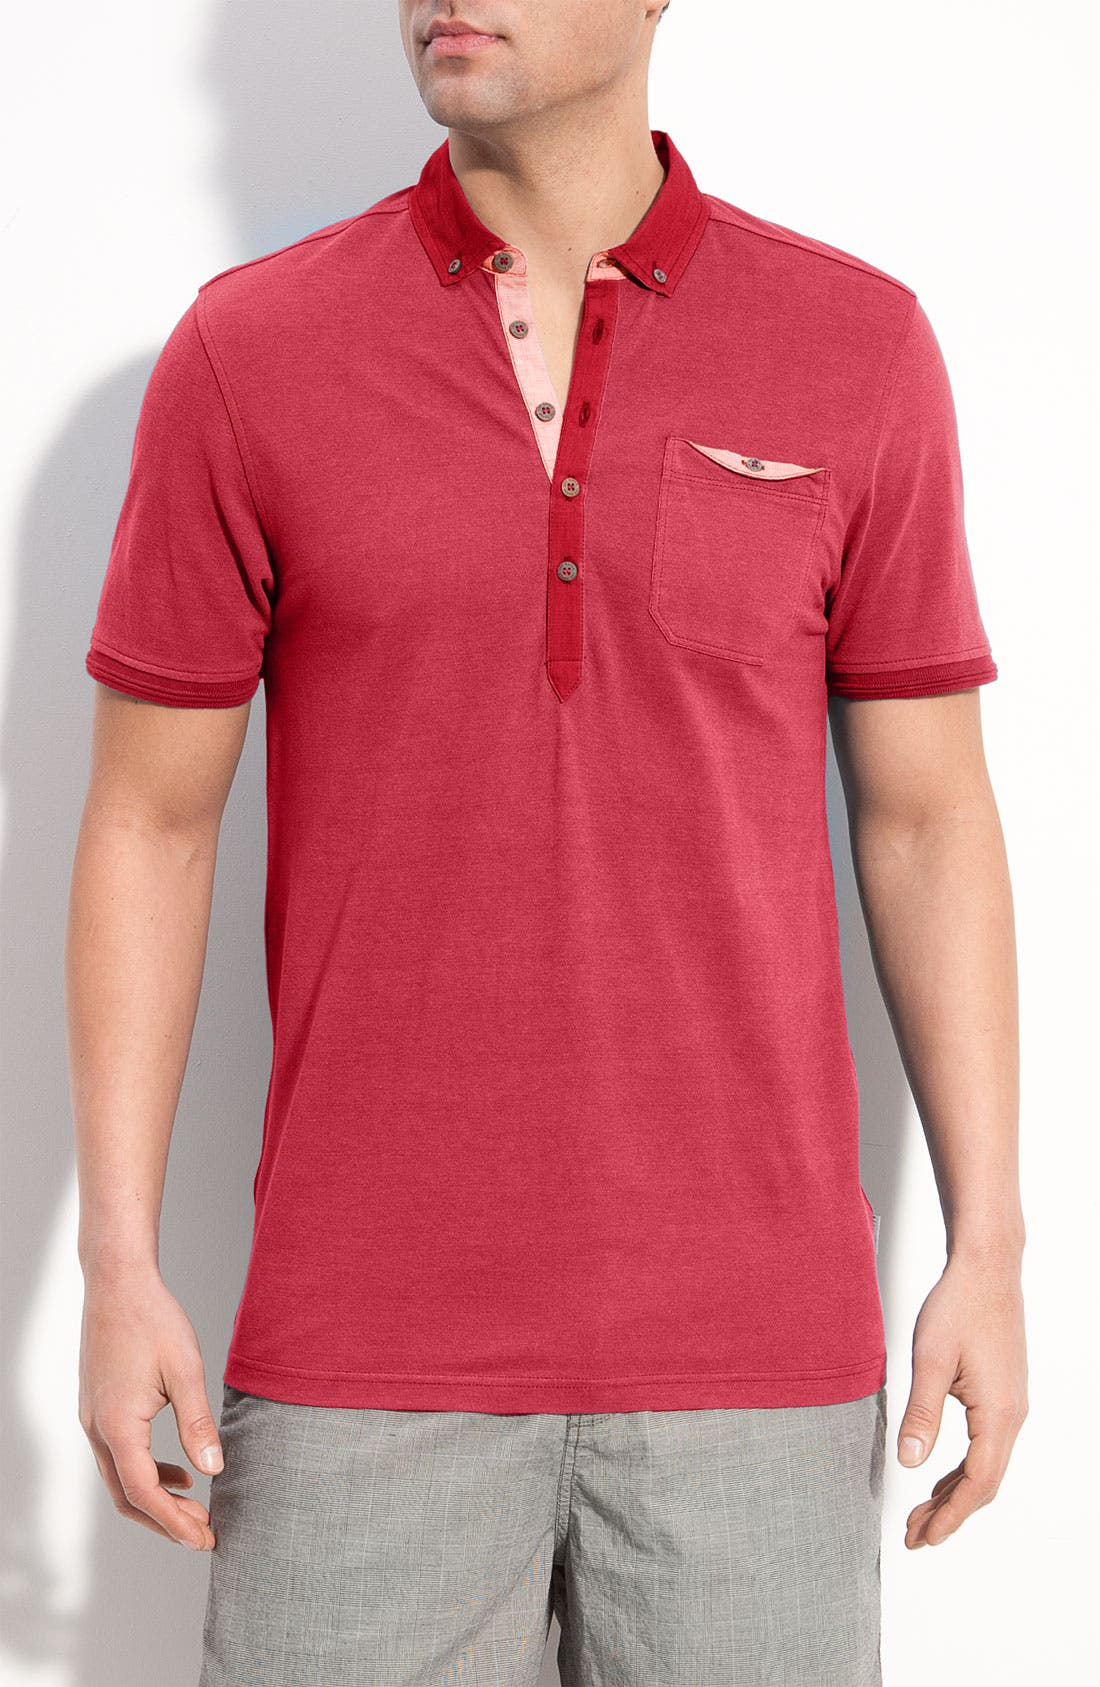 Main Image - Ted Baker London Trim Fit Polo